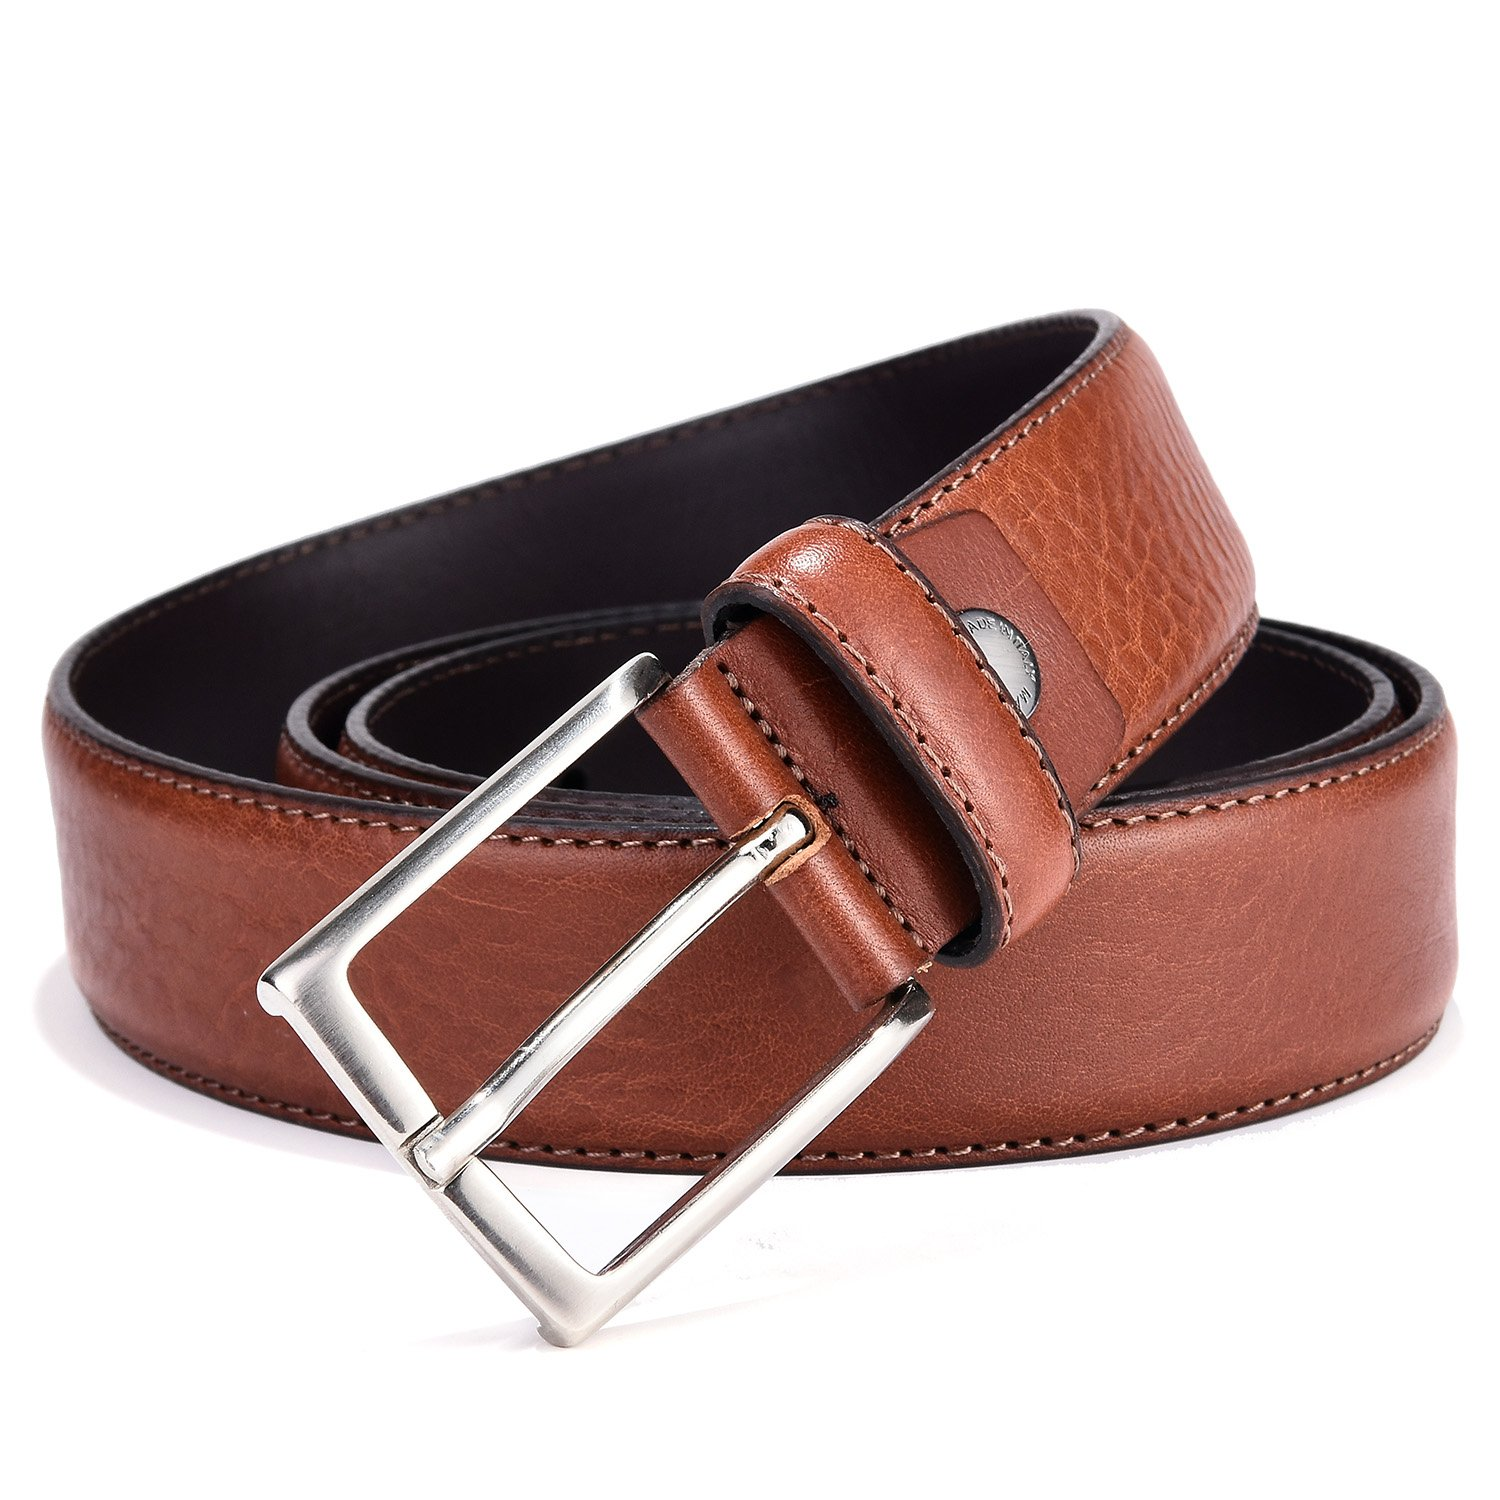 Genuine Leather Belt for Men - Mens Full Grain Italian Leather Dress Belt Brown 35mm 36